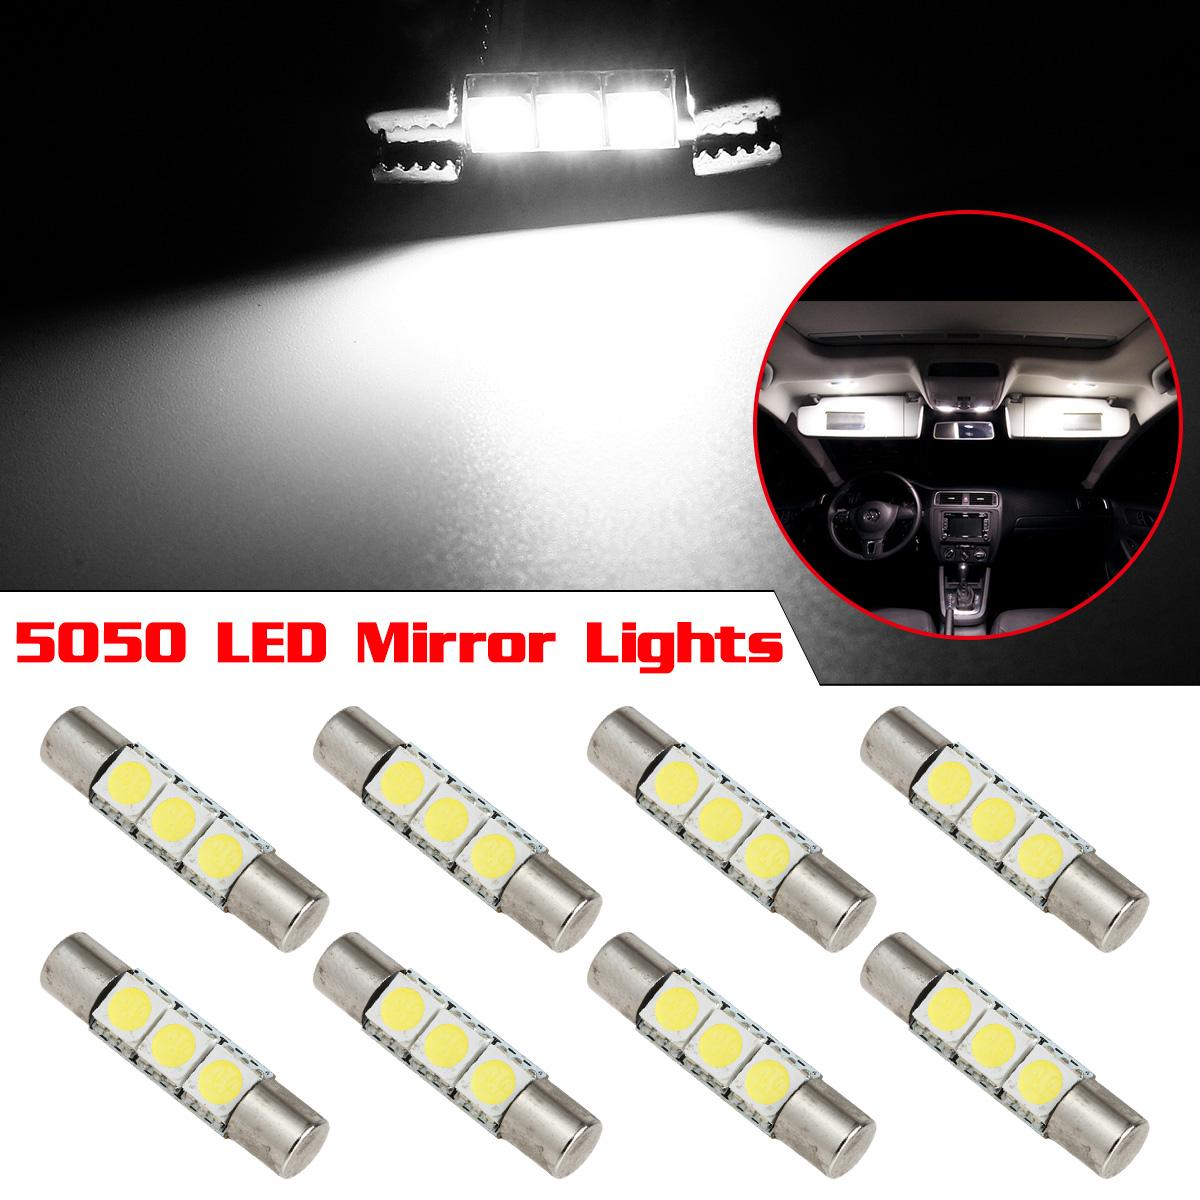 8x xenon white 3 smd 5050 led bulbs for car vanity mirror lights 28 29mm 6641 ebay. Black Bedroom Furniture Sets. Home Design Ideas